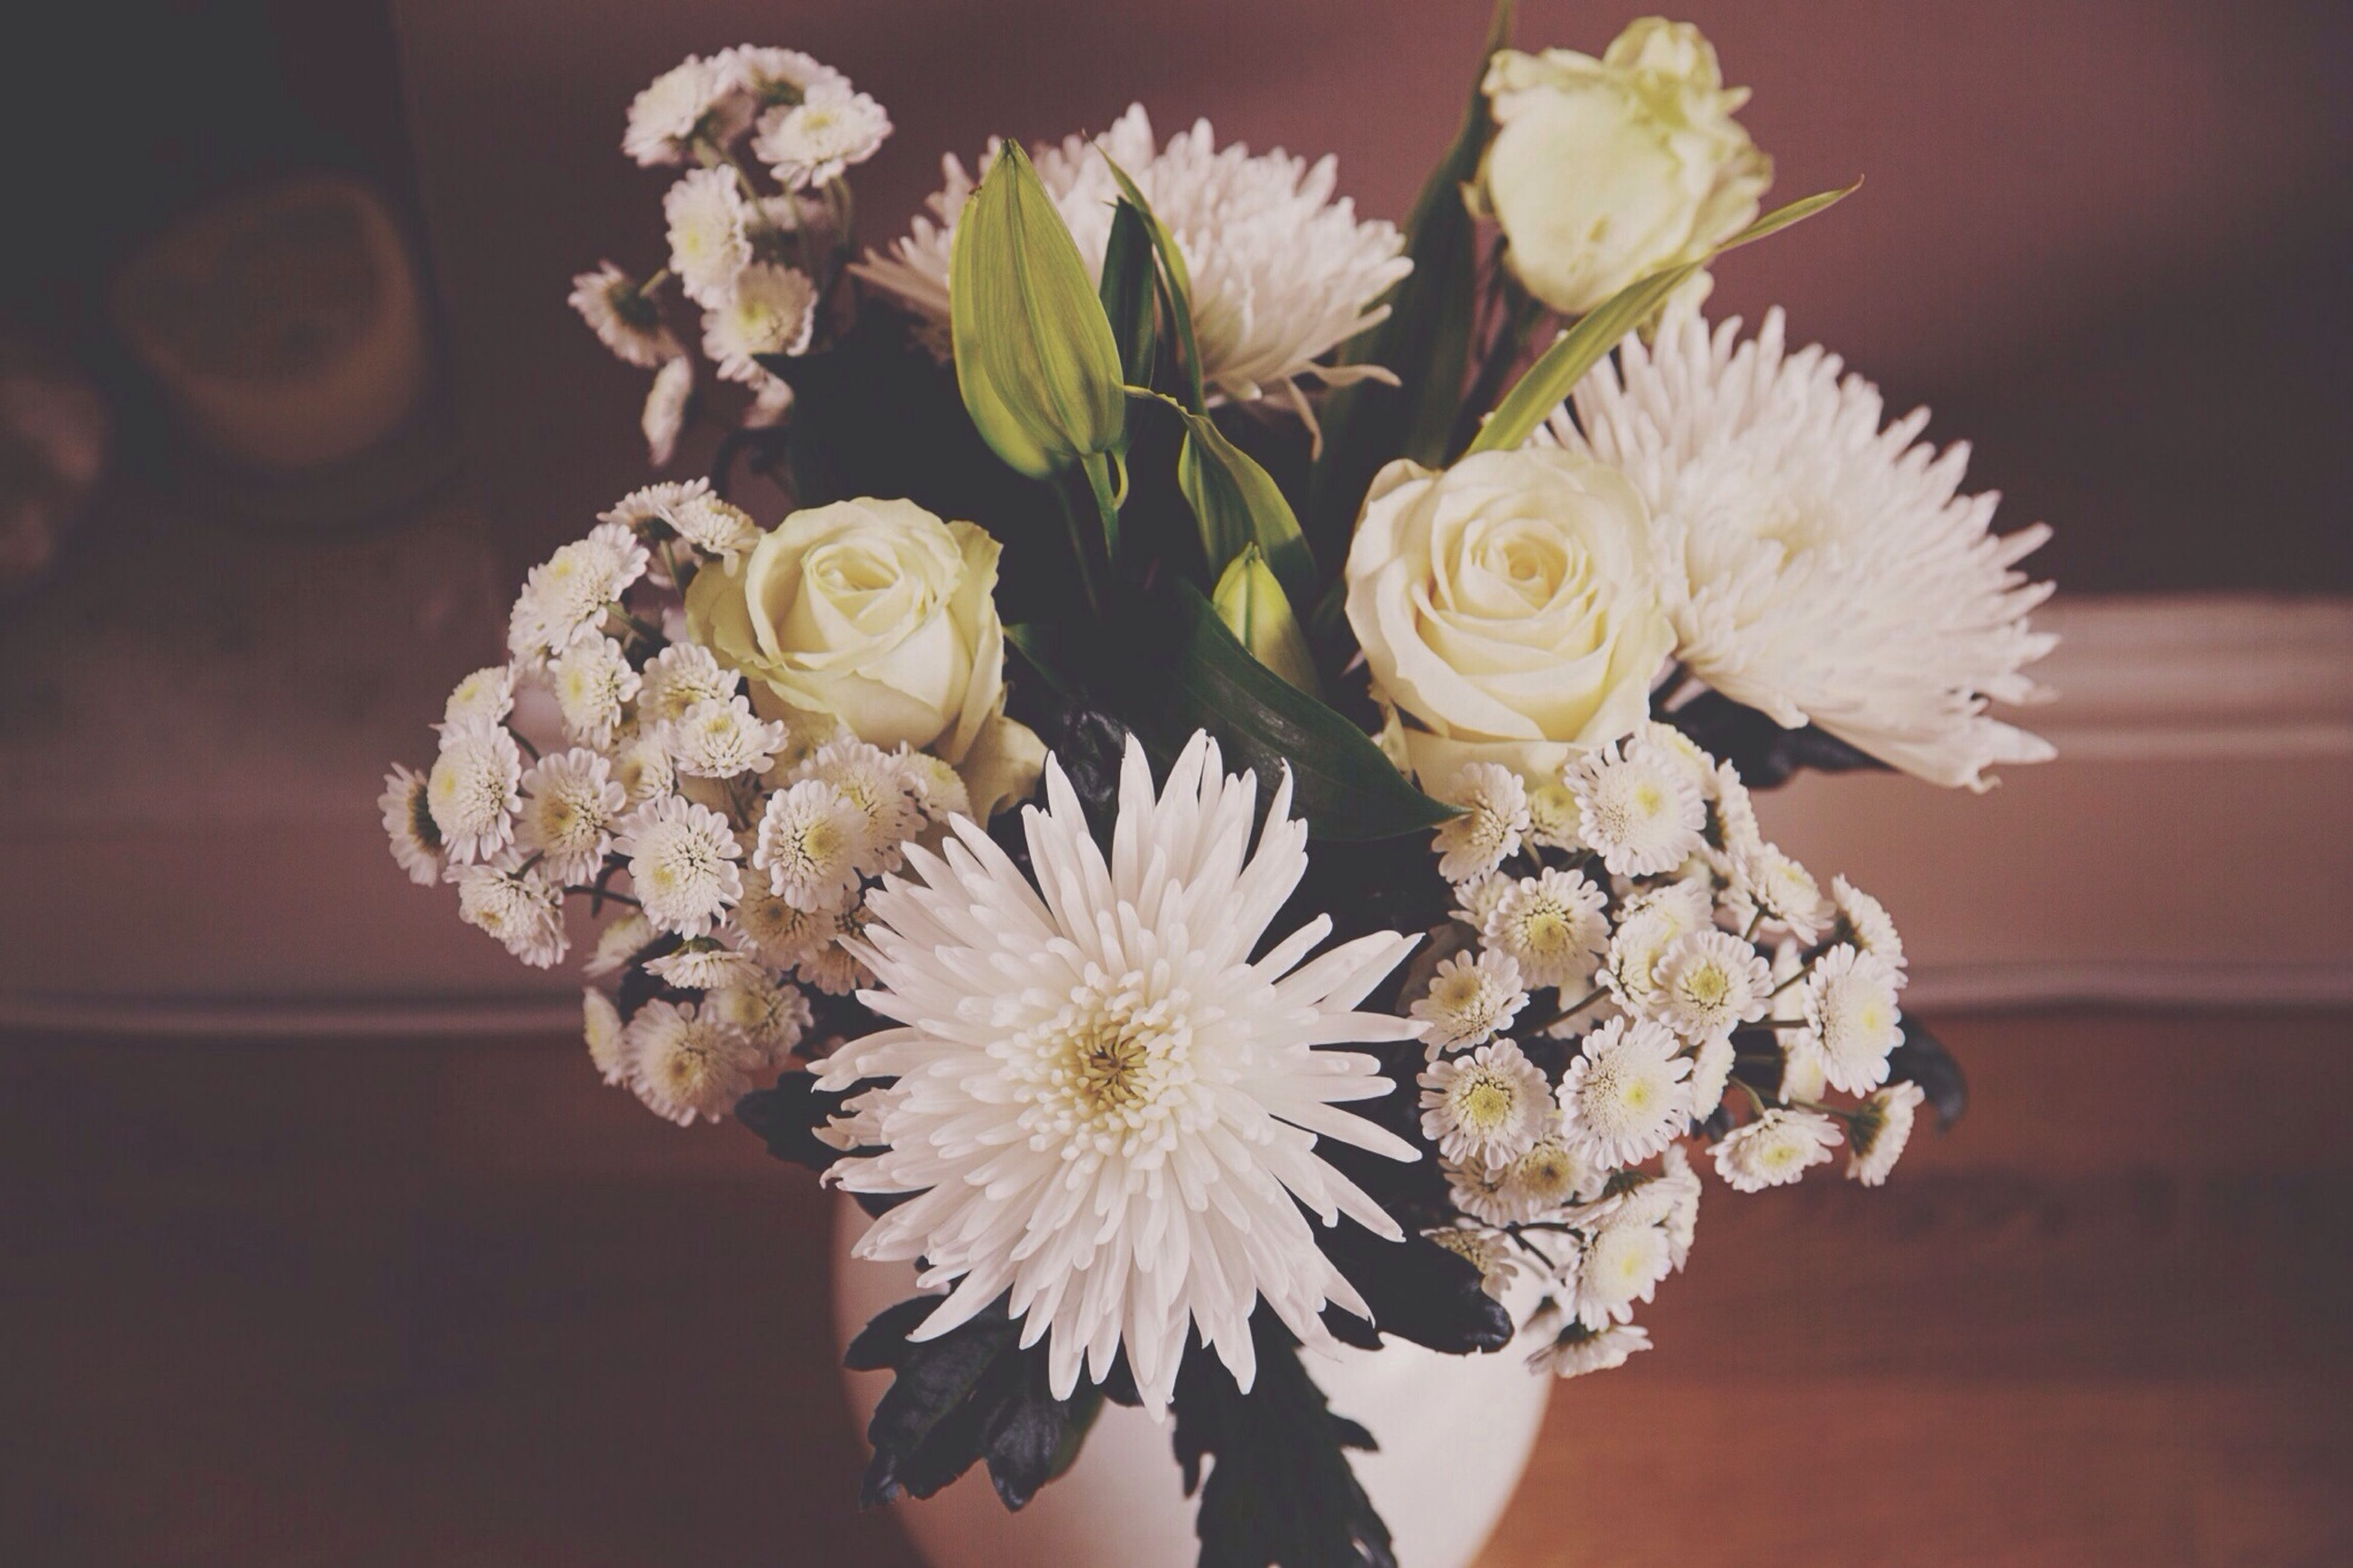 flower, petal, freshness, fragility, flower head, white color, indoors, vase, beauty in nature, bunch of flowers, bouquet, close-up, focus on foreground, nature, growth, blooming, blossom, plant, flower arrangement, in bloom